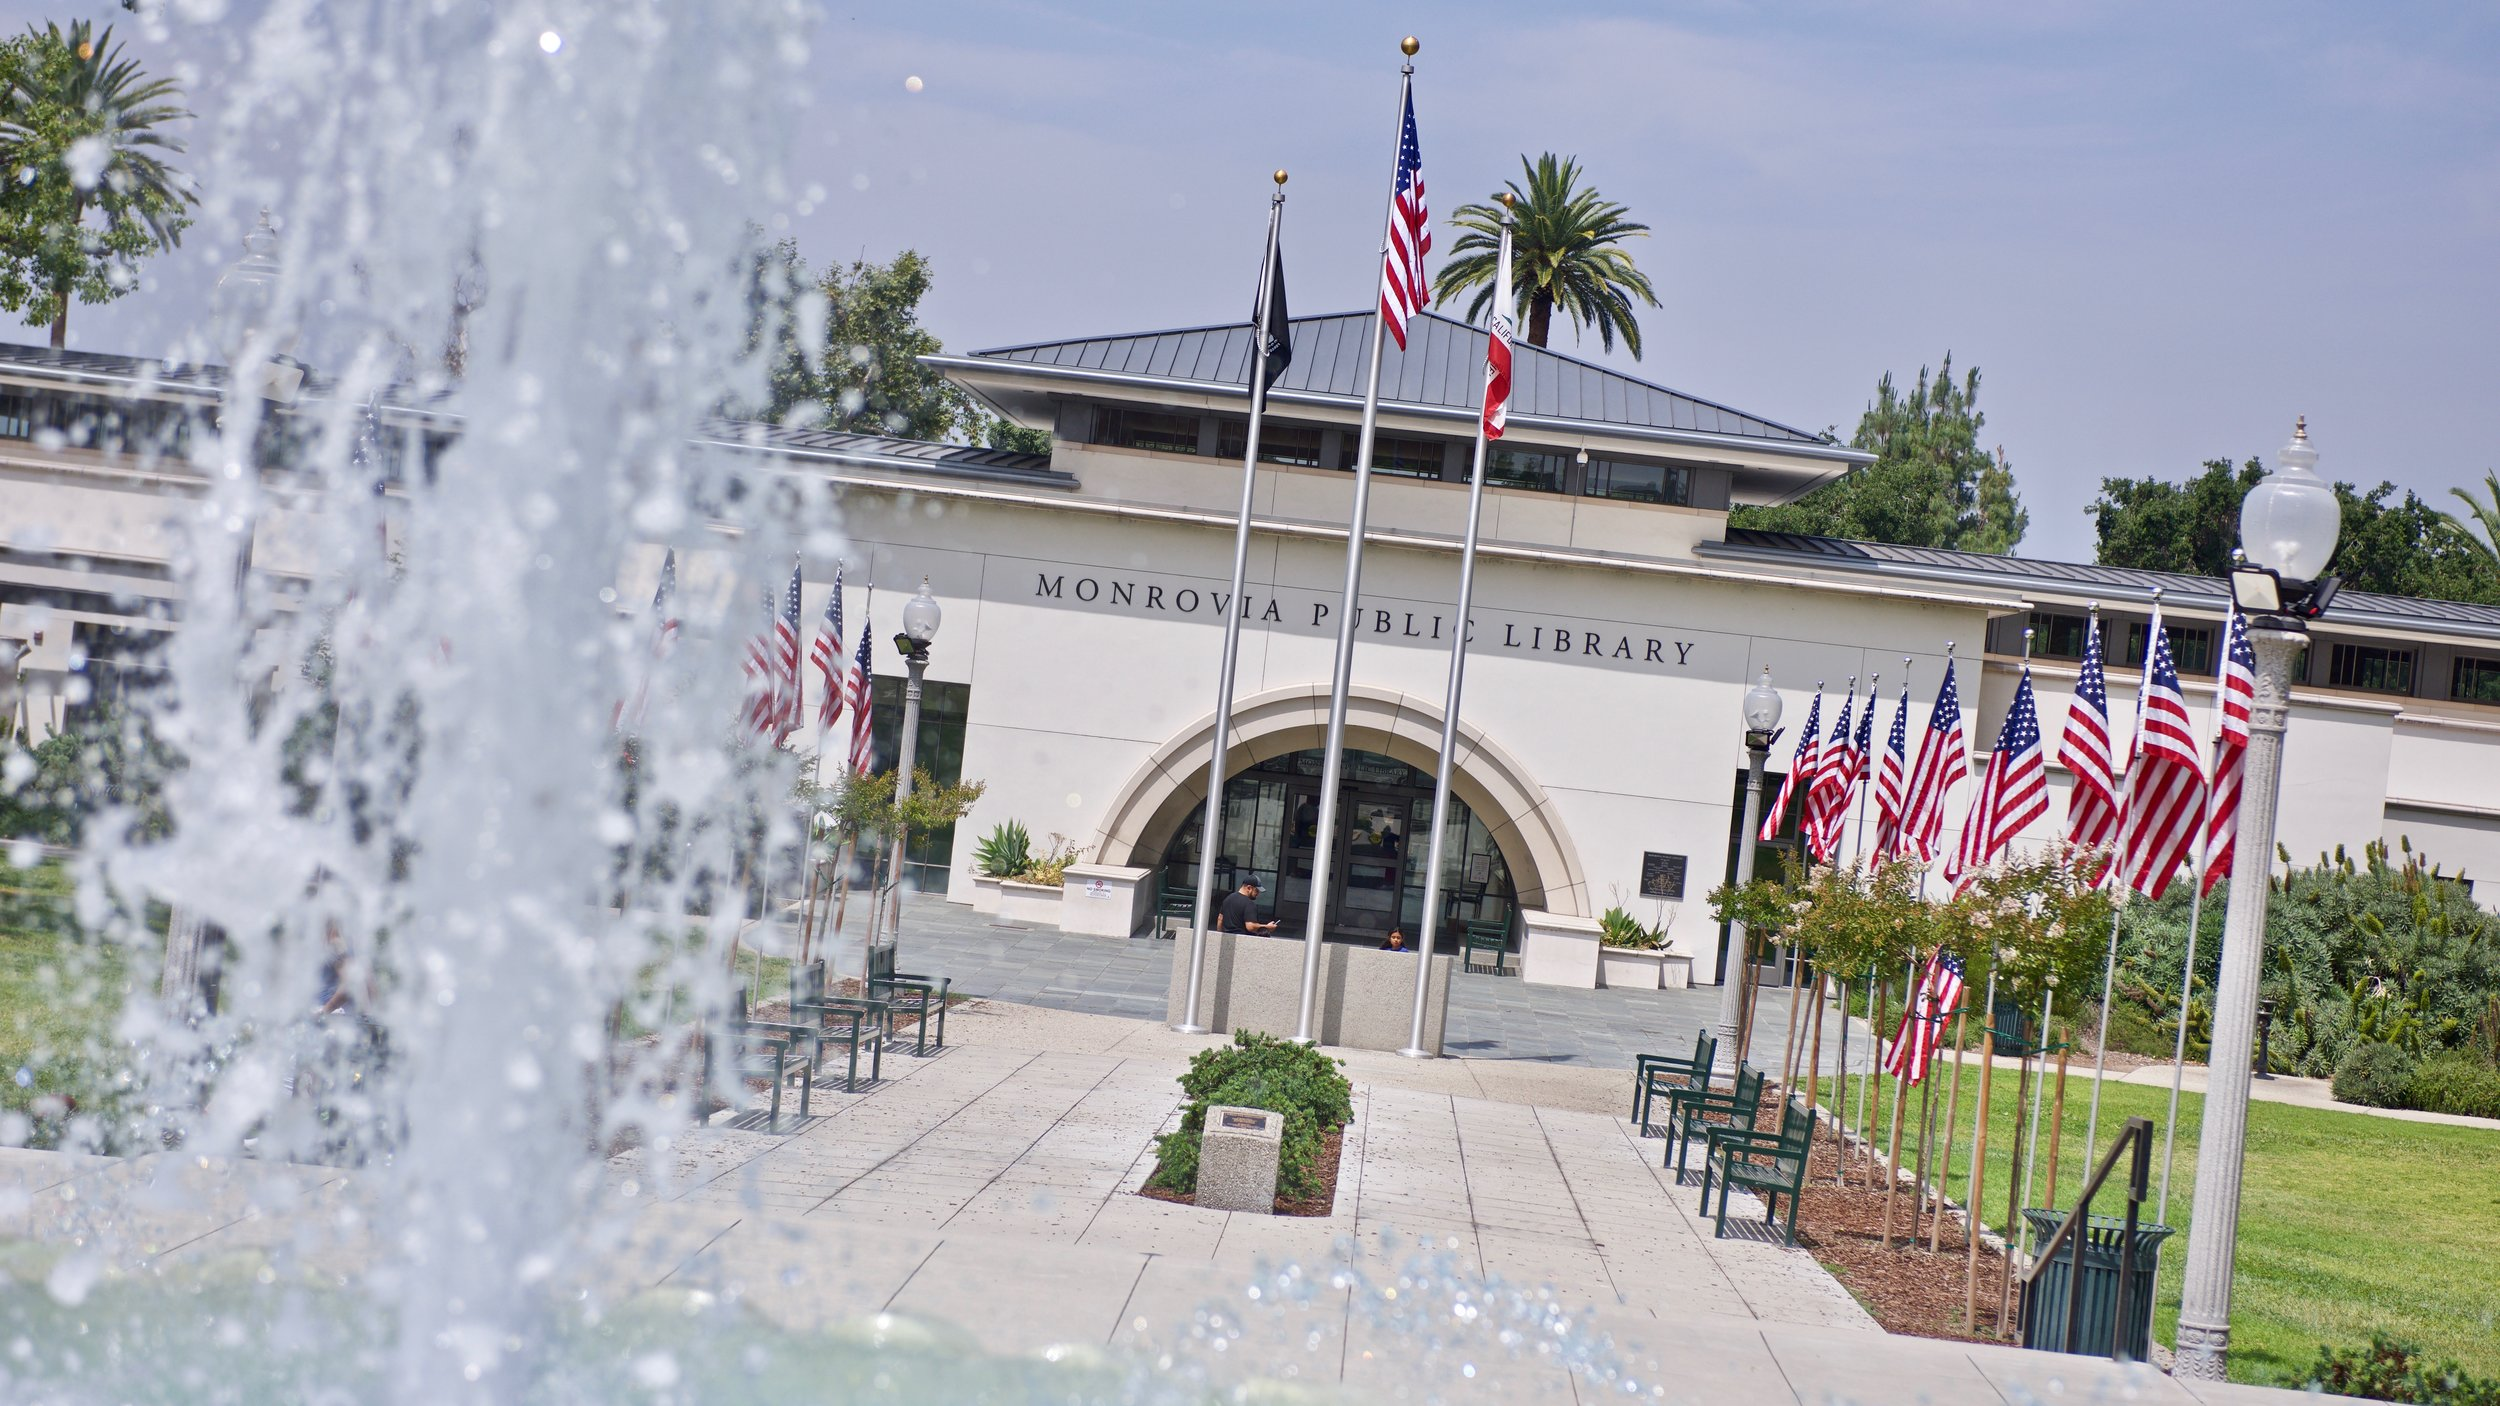 Monrovia Public Library - Dressed for Memorial Day